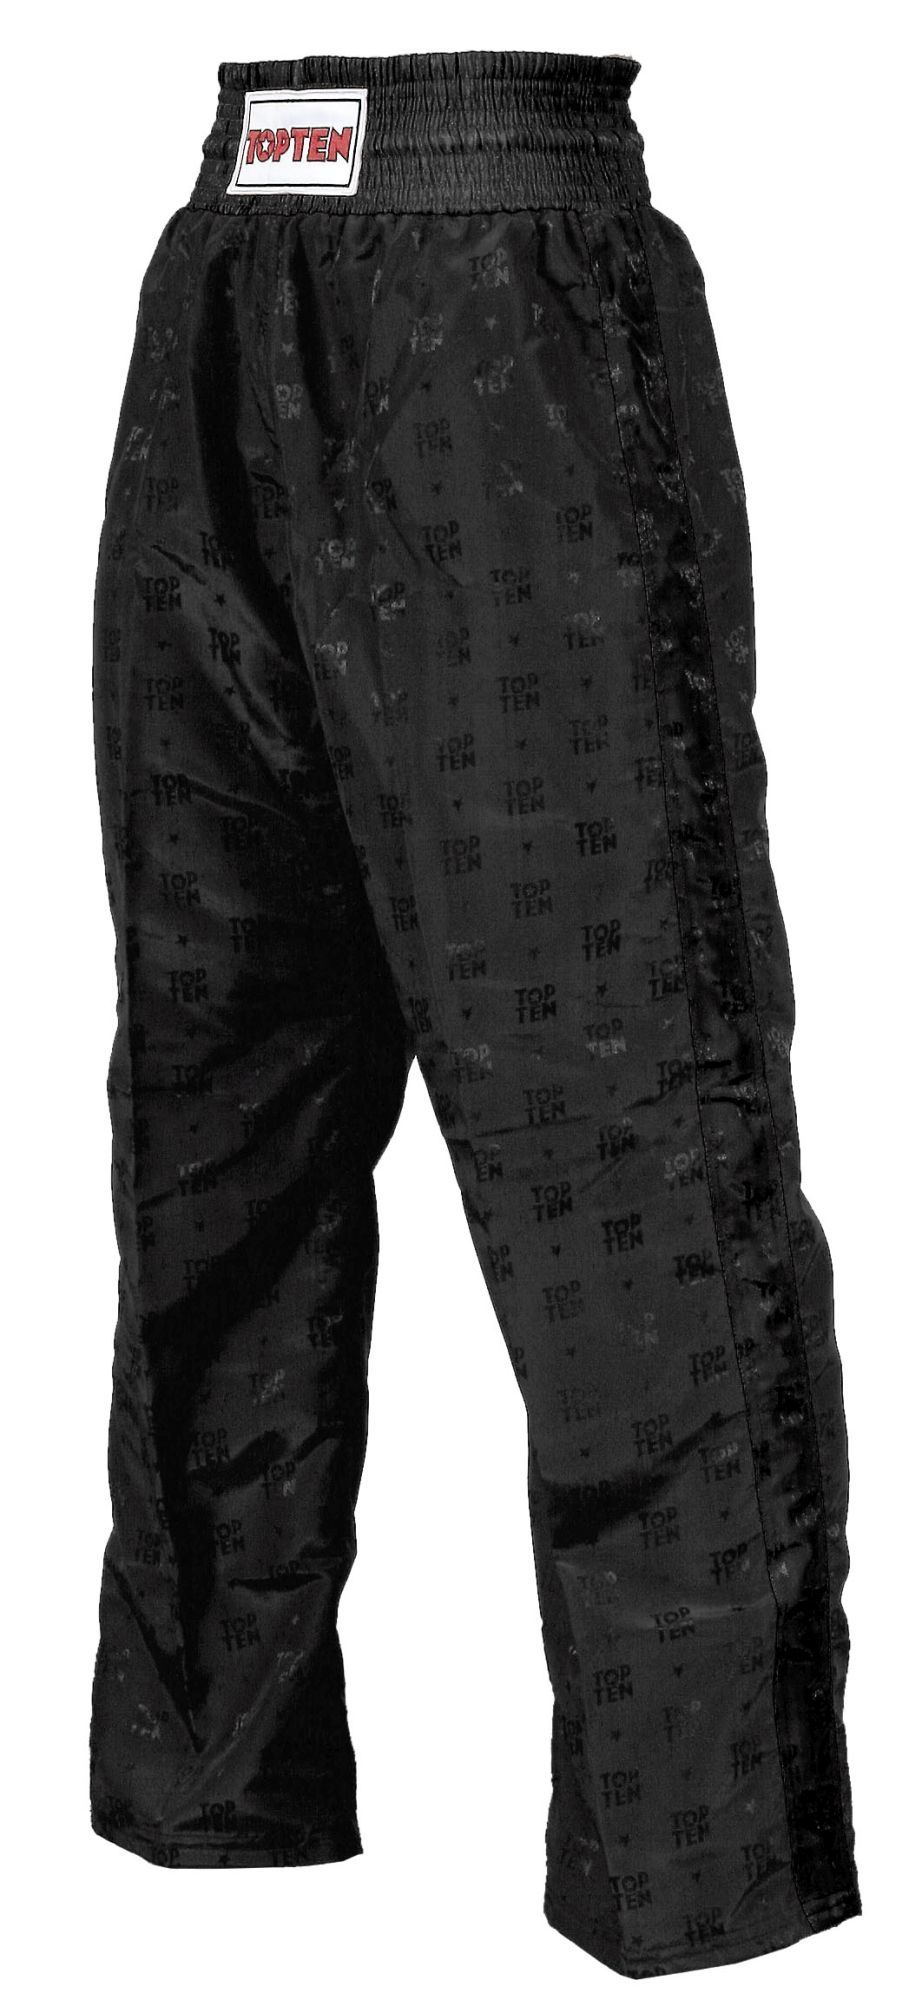 Top Ten Kickboxing Pants Black